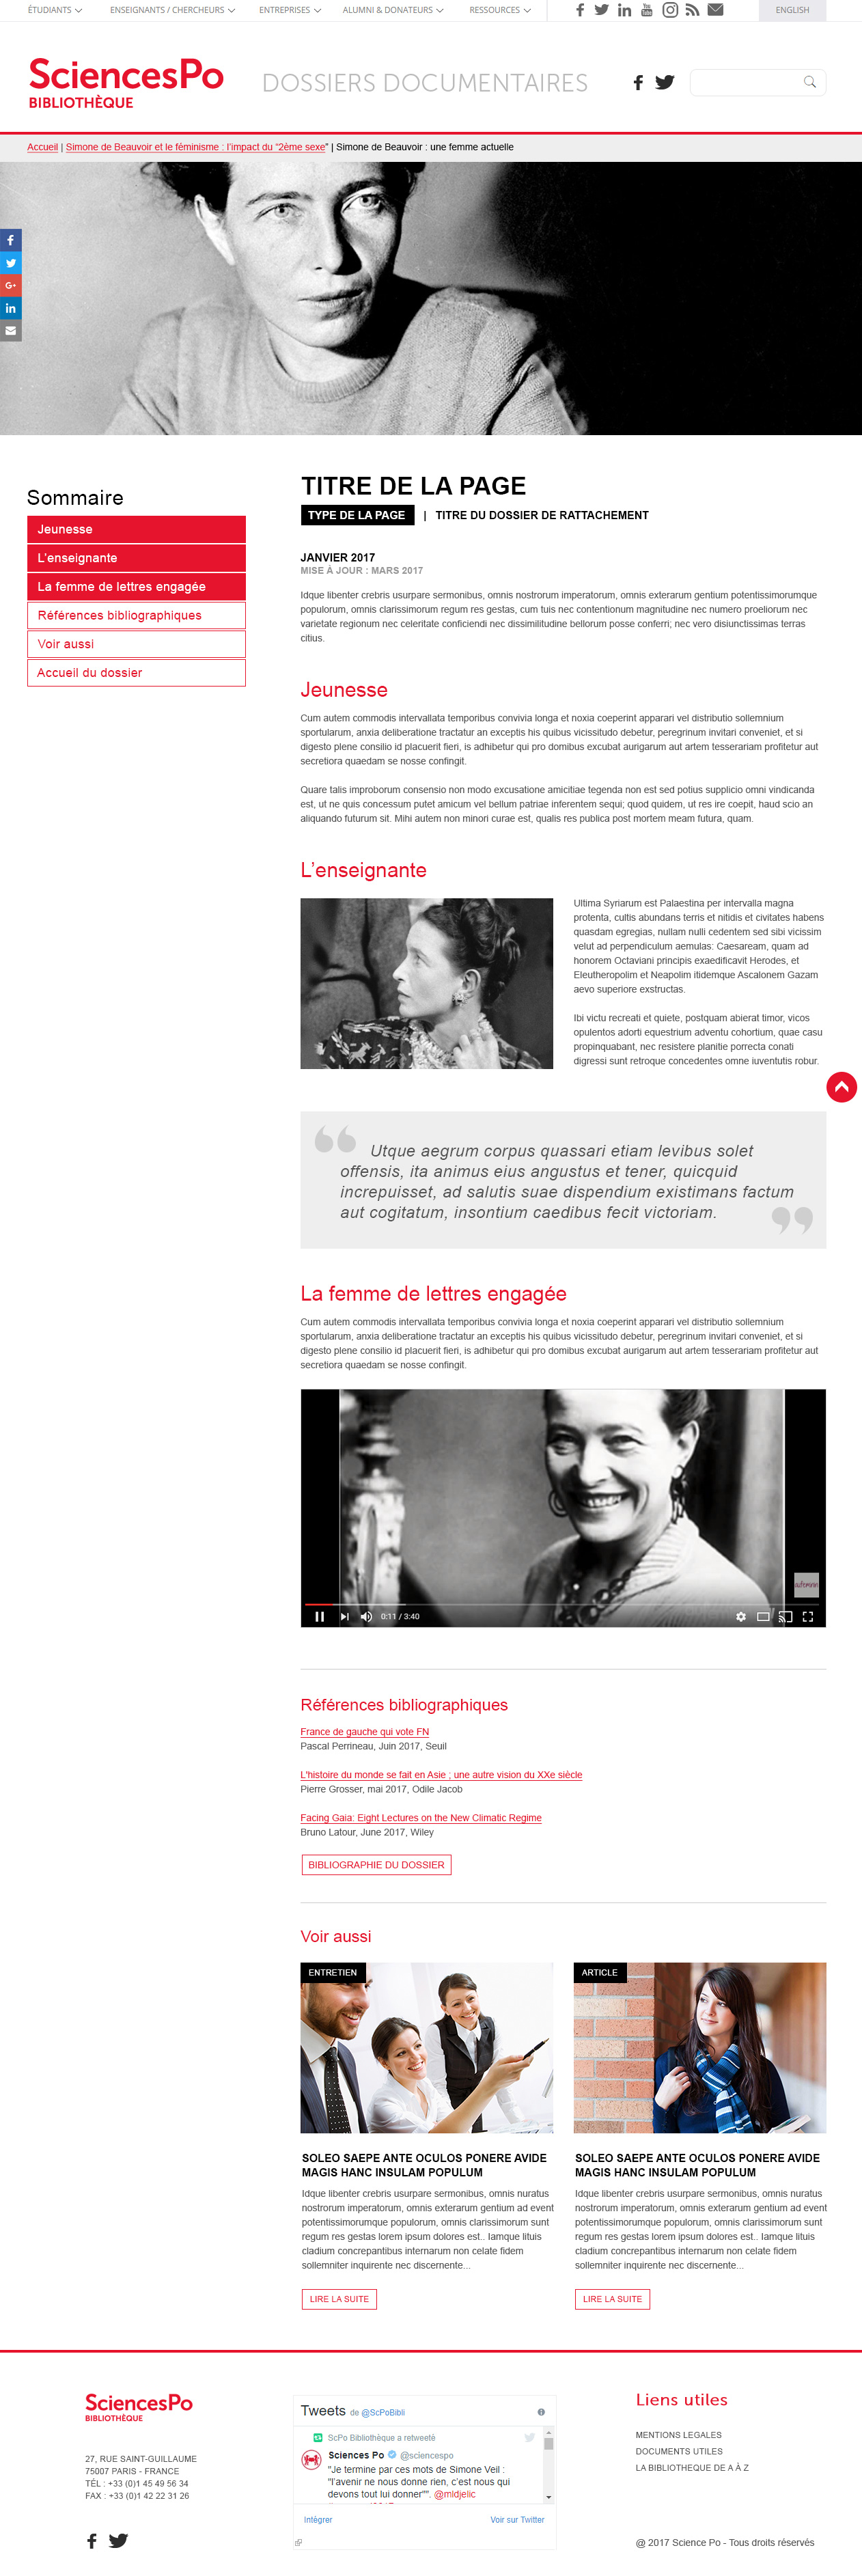 Sciences Po Documentaire – Article